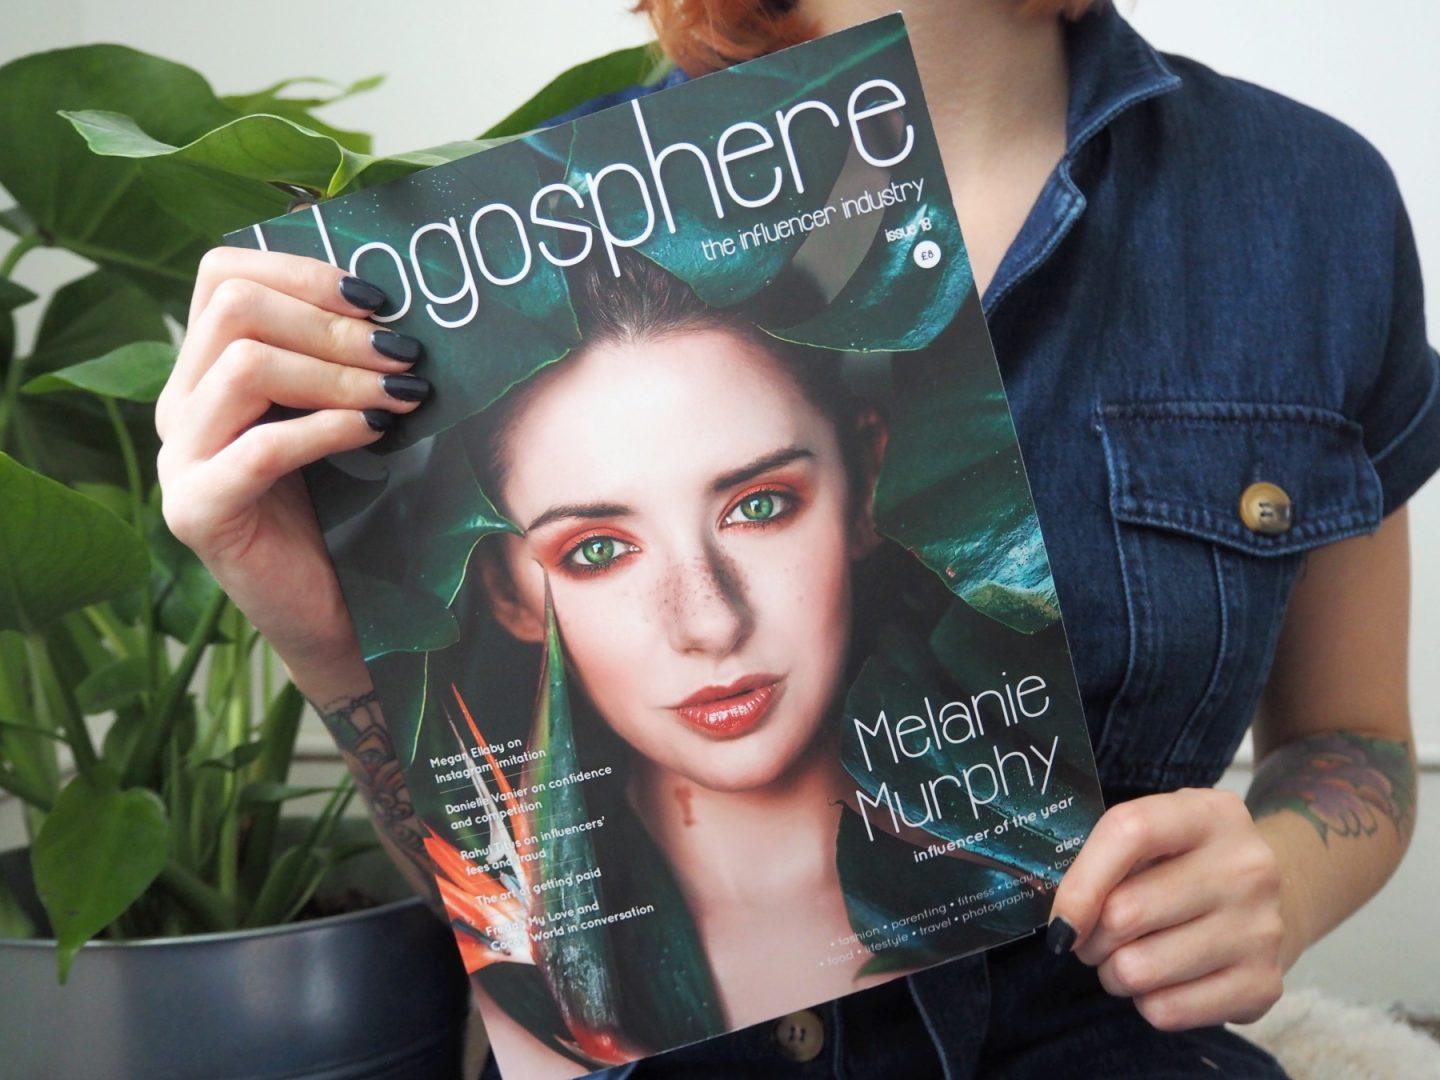 Has The Blogging Community Become Toxic? - me holding blogosphere magazine